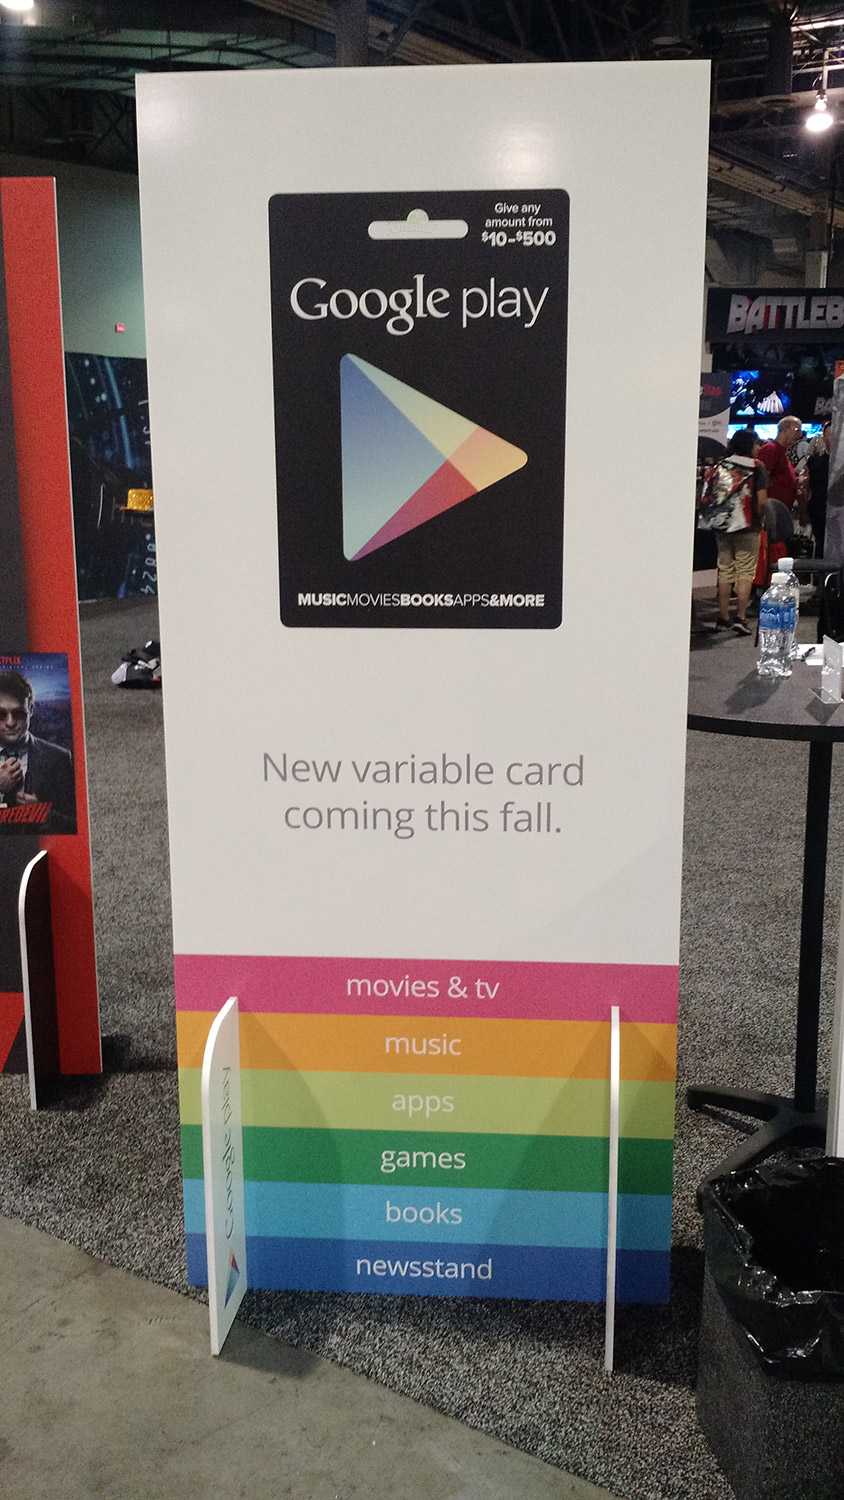 Looks like a variable amount Google Play gift card is ...